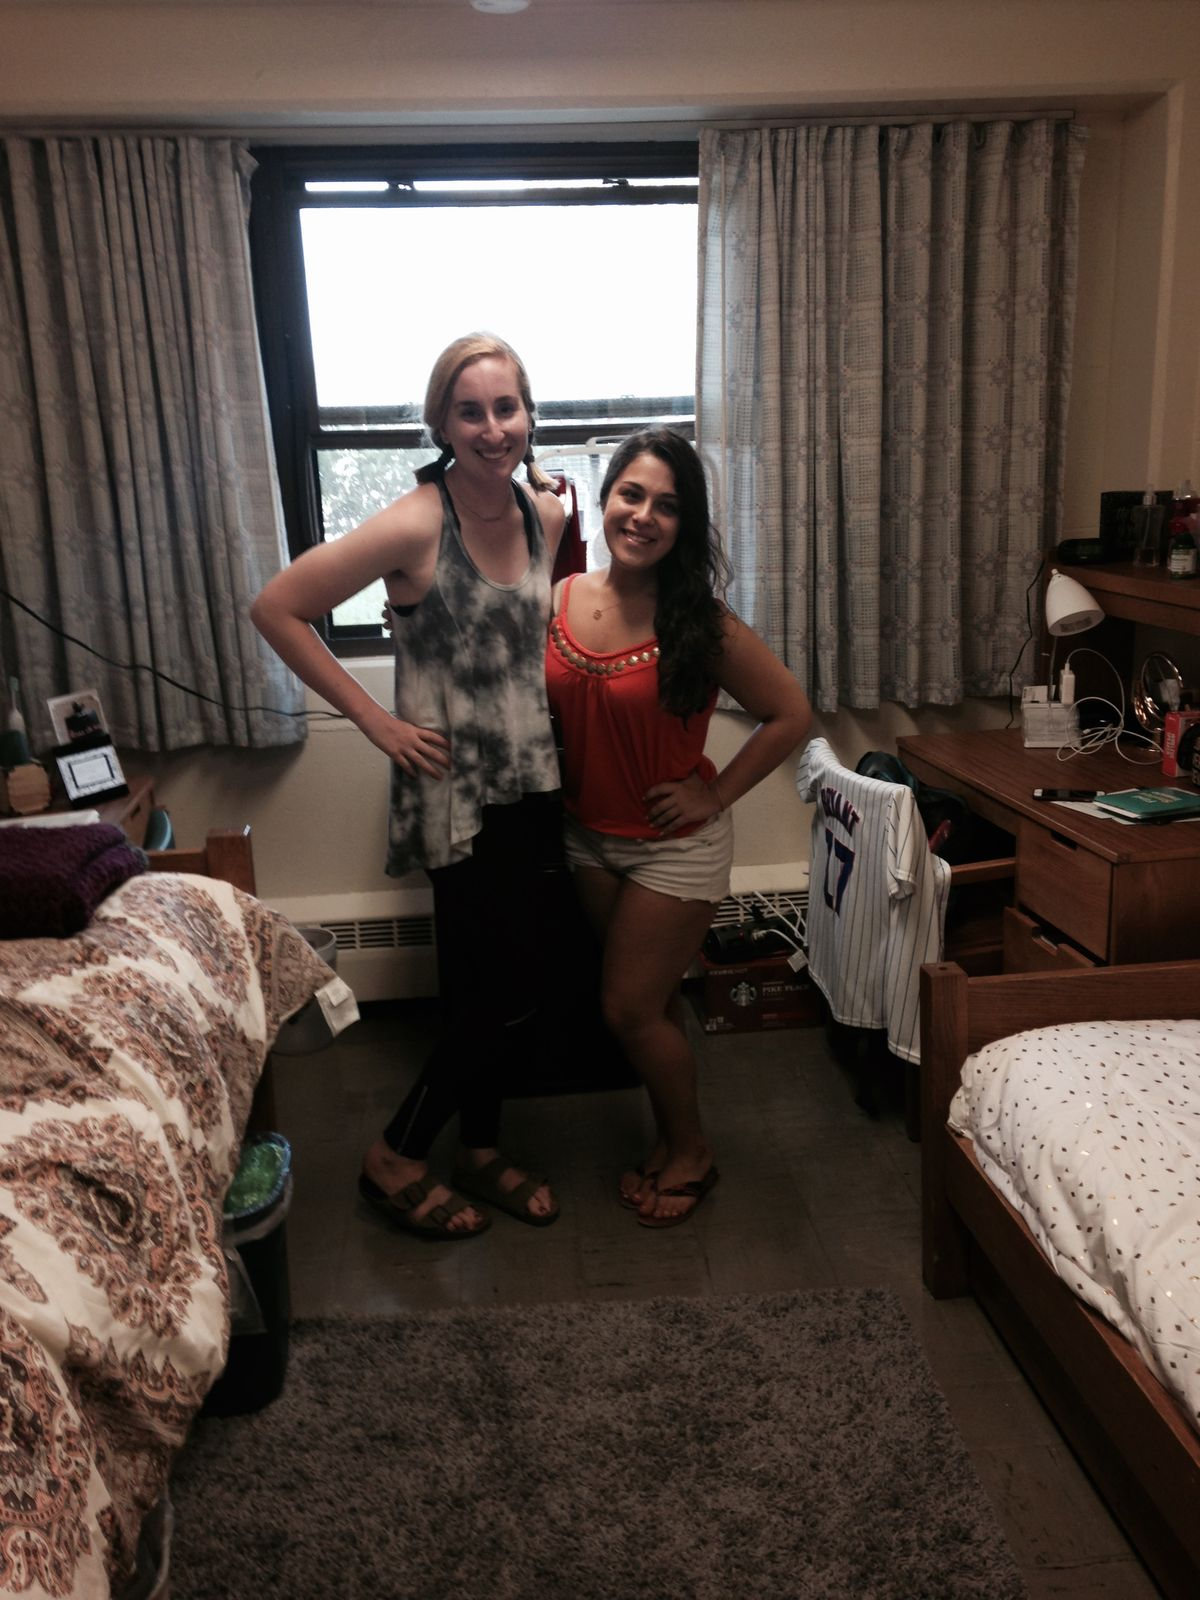 I Took The Risk And Roomed With Someone I Already Know For My Freshman Year, It Was The Best Decision I've Made